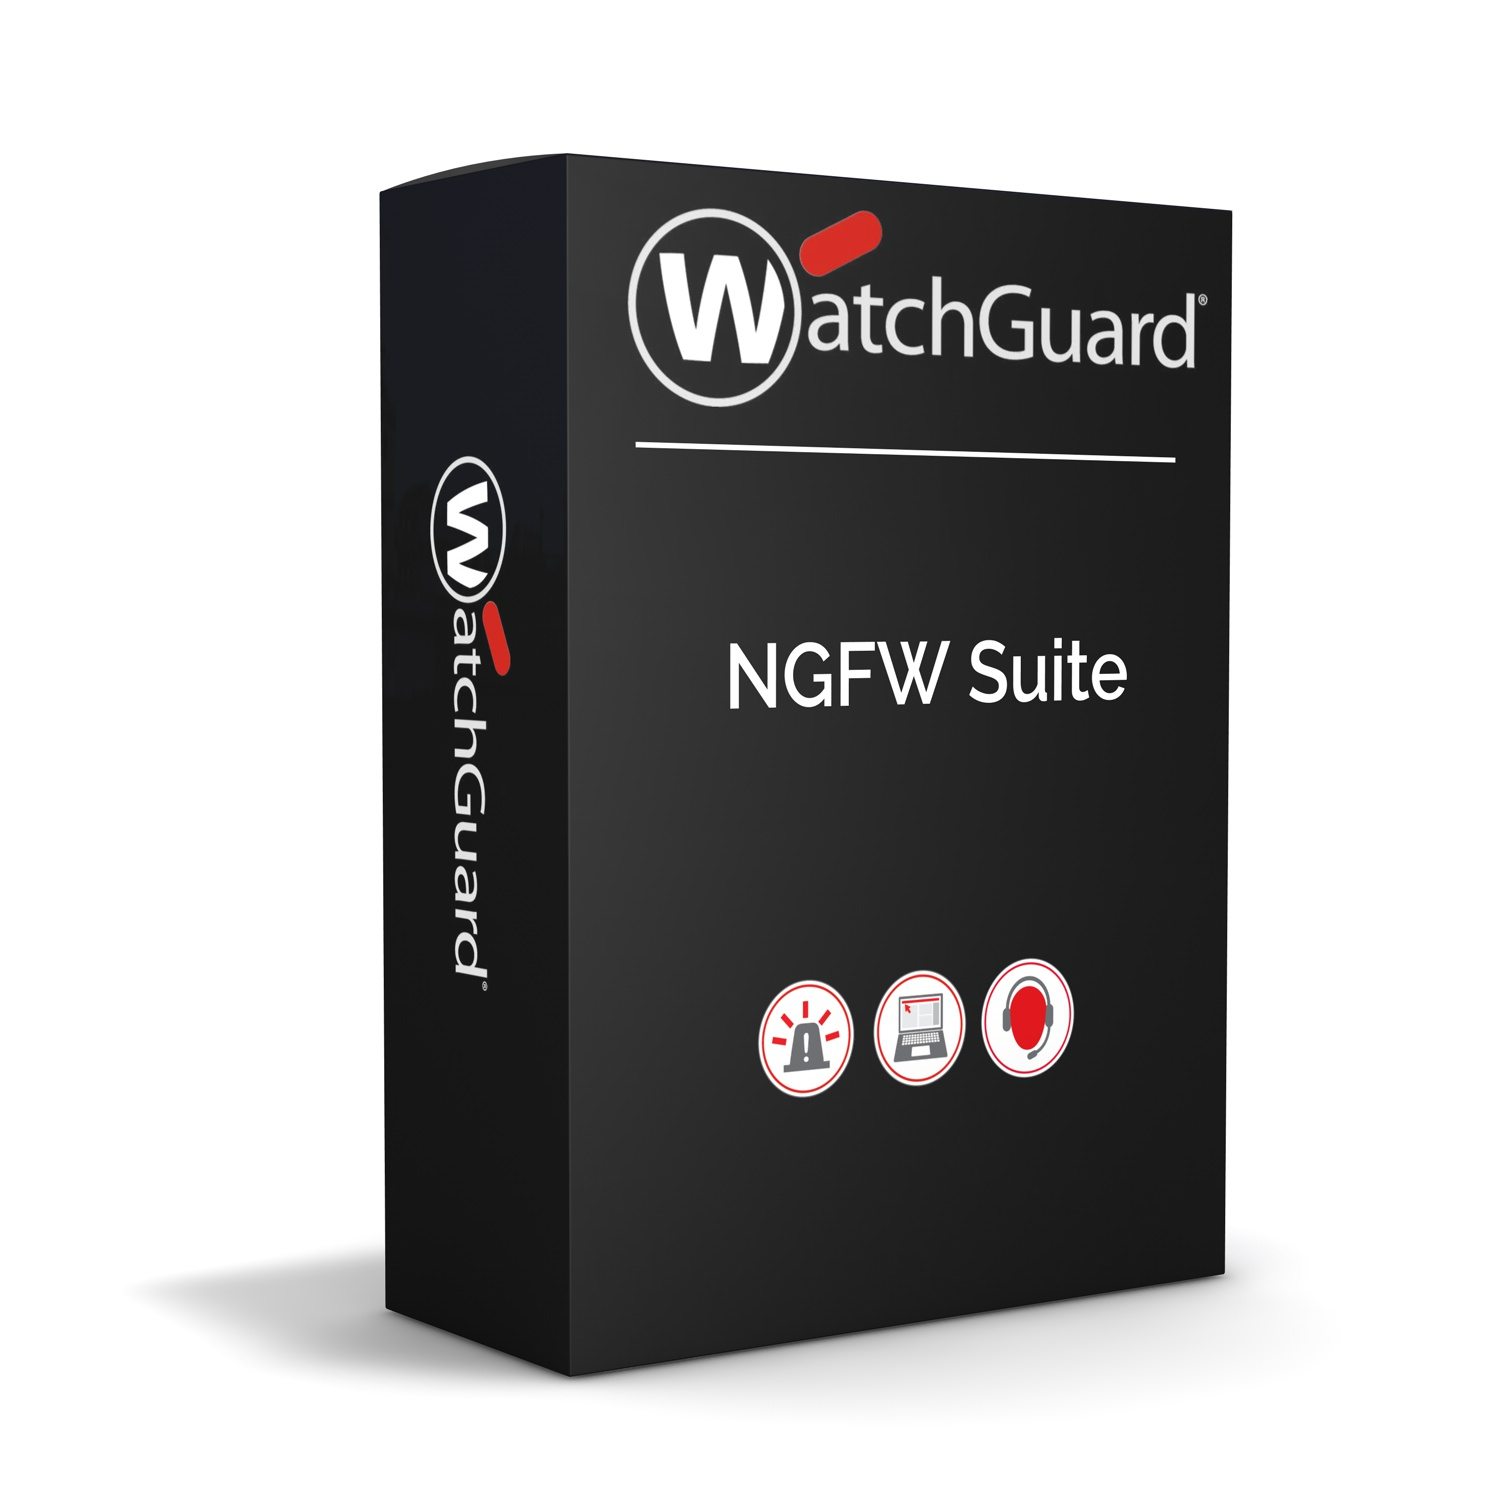 WatchGuard NGFW Suite Renewal/Upgrade 1-yr for Firebox M4600